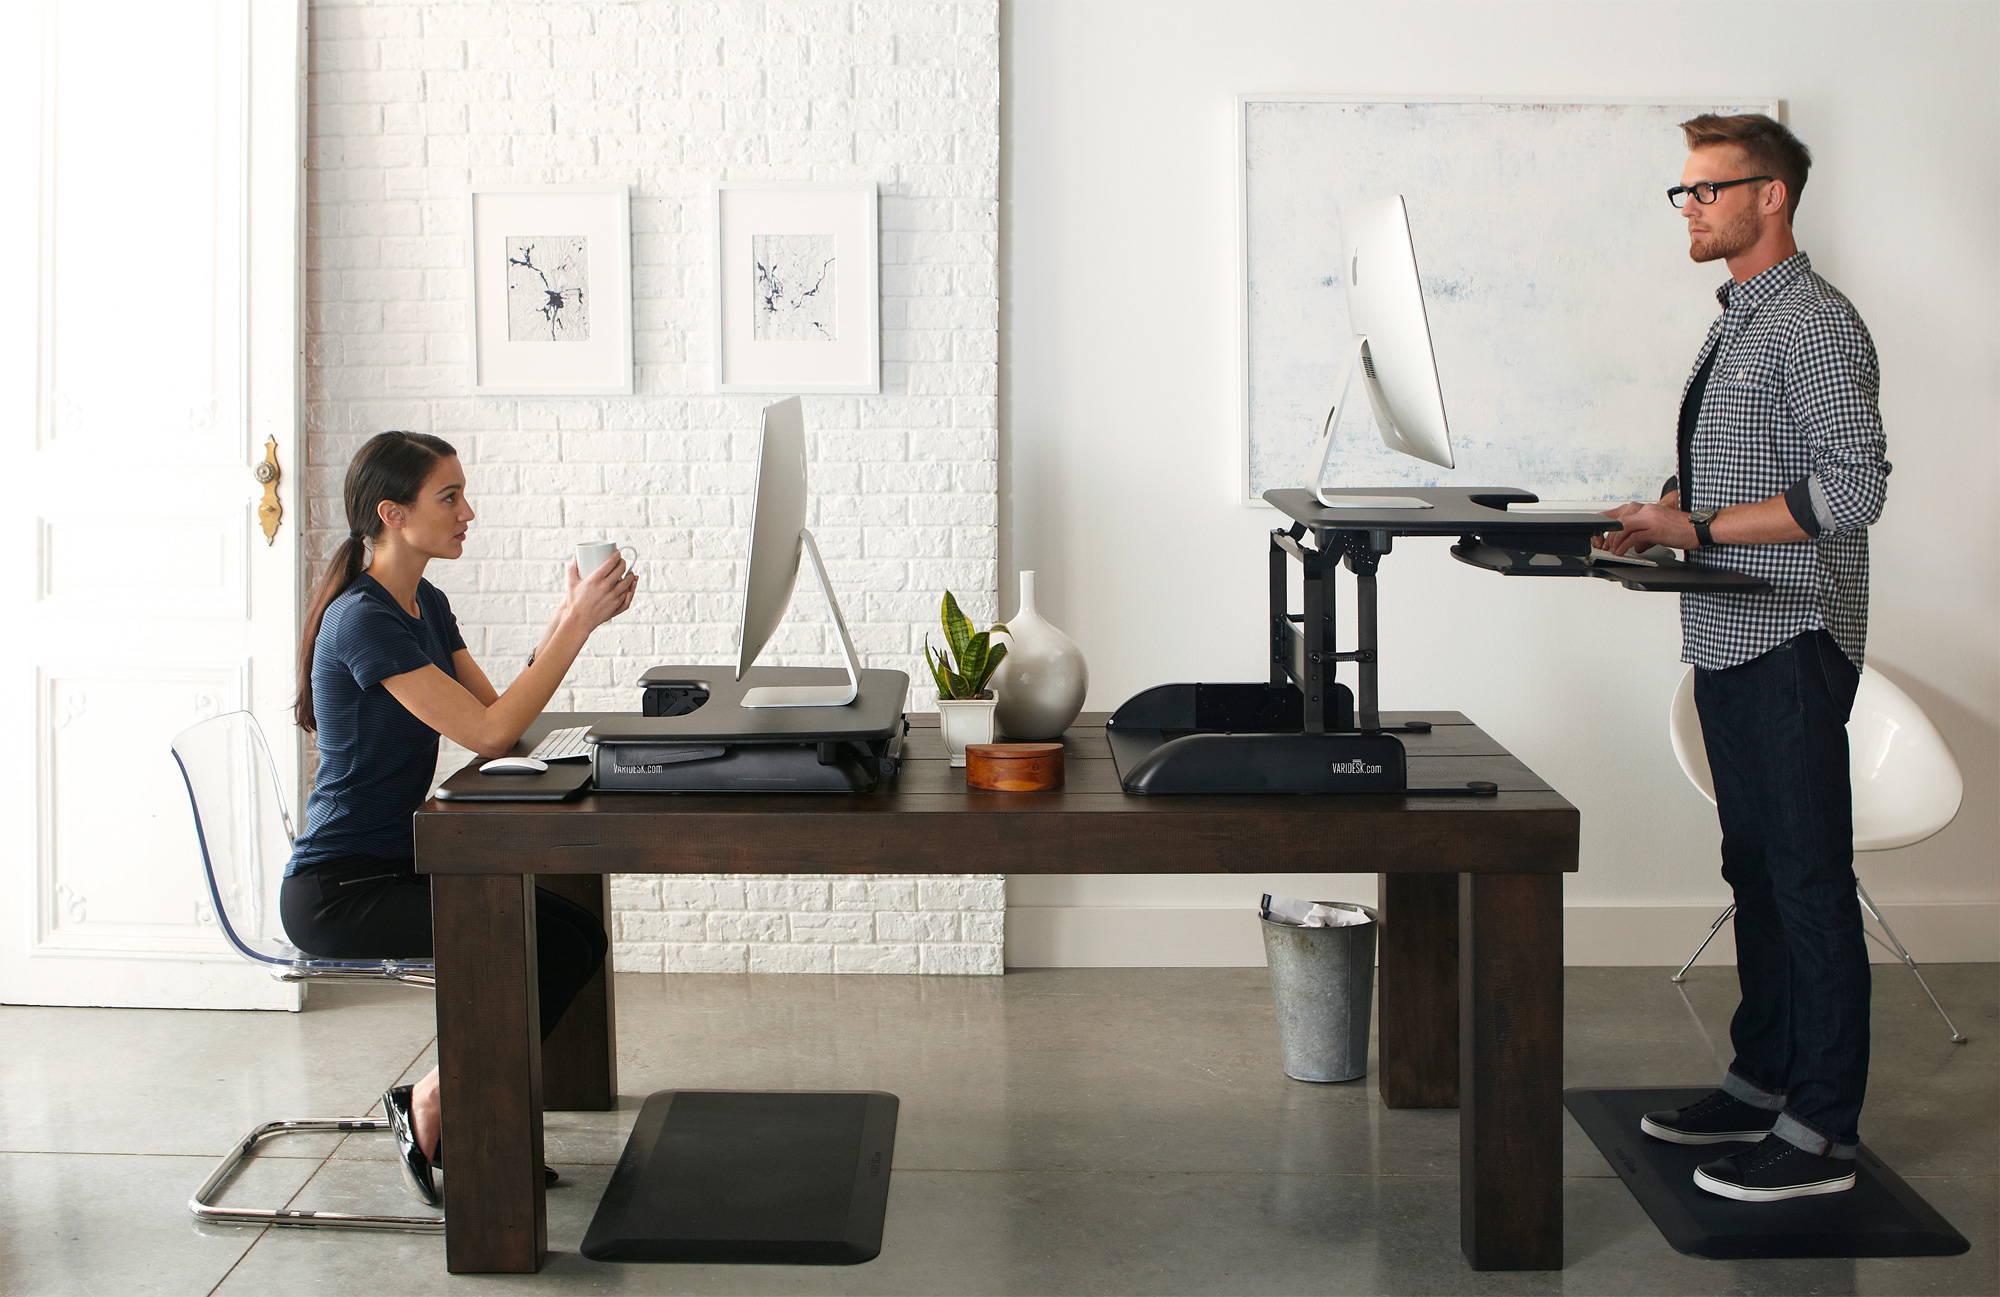 Could The Varidesk Make Me Fitter And More Productive?